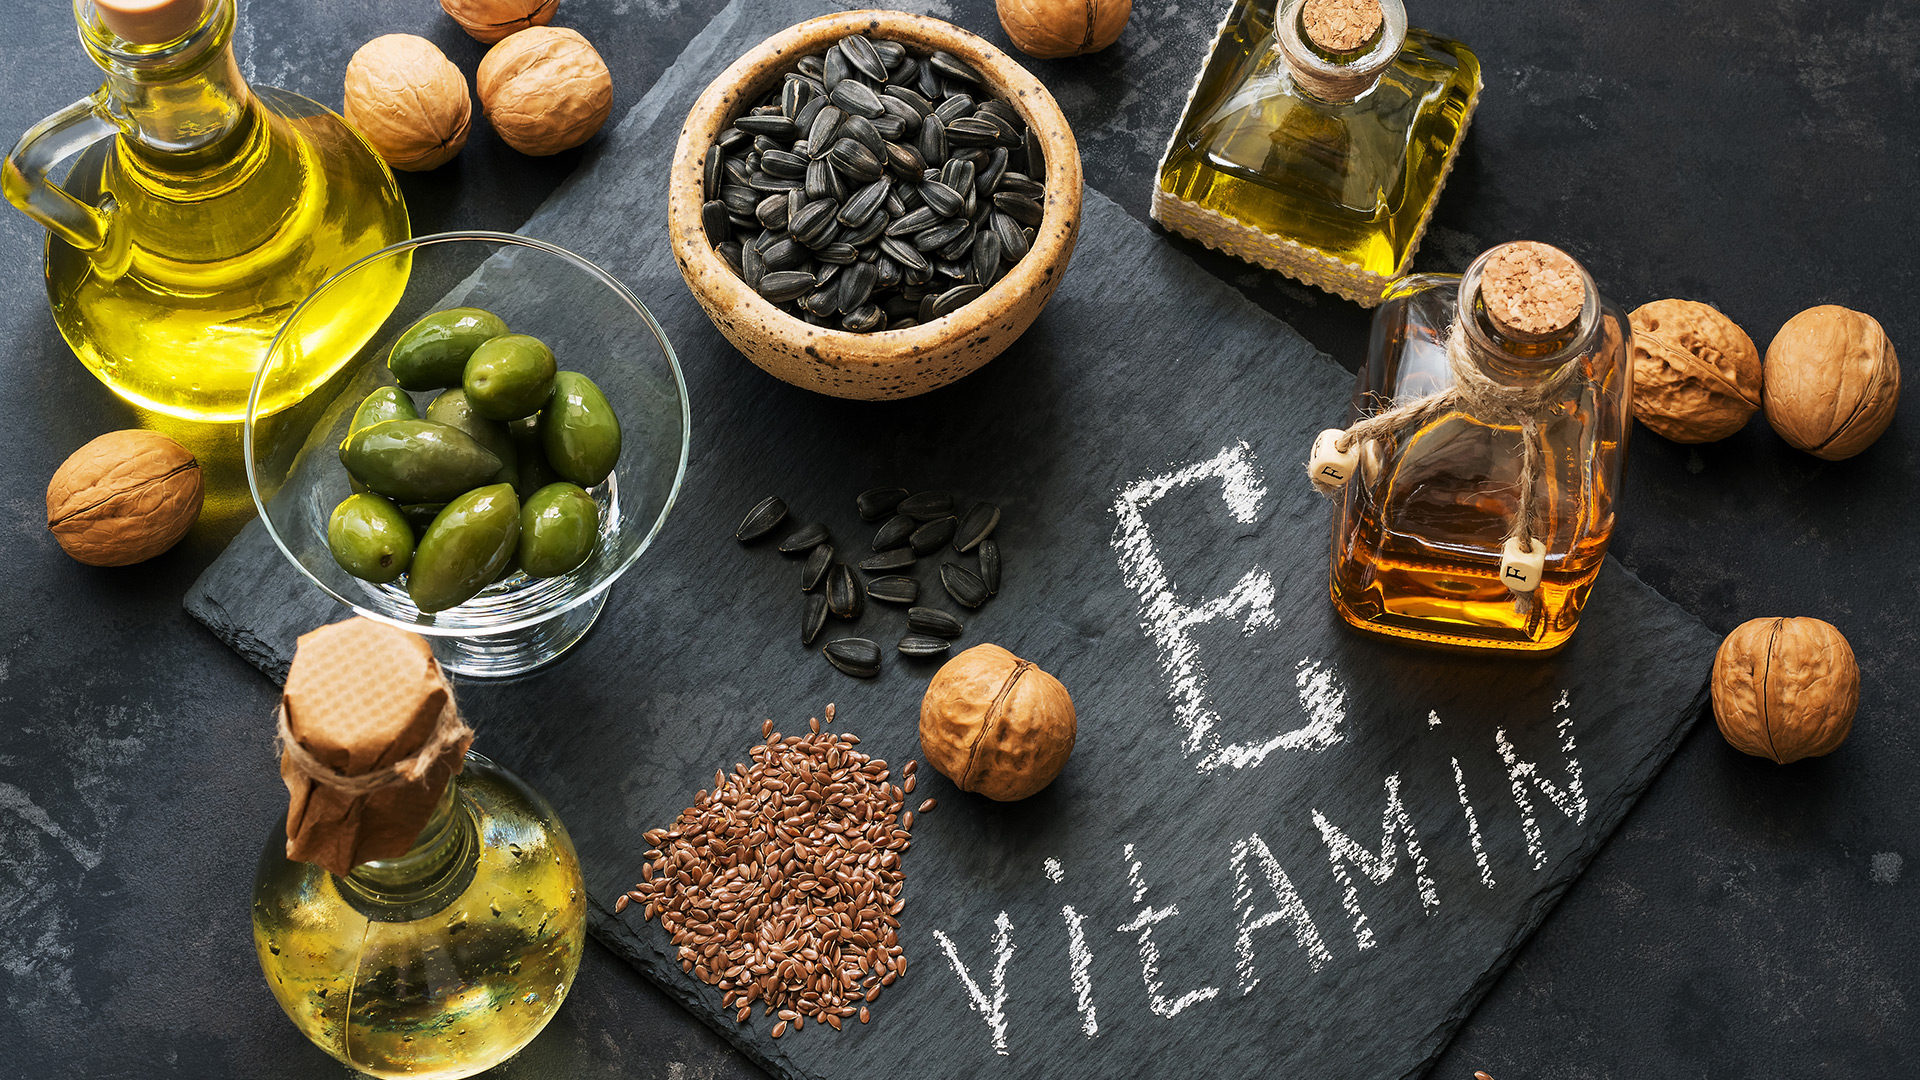 Get knowledge about Hair vitamins to get better benefits for your hair